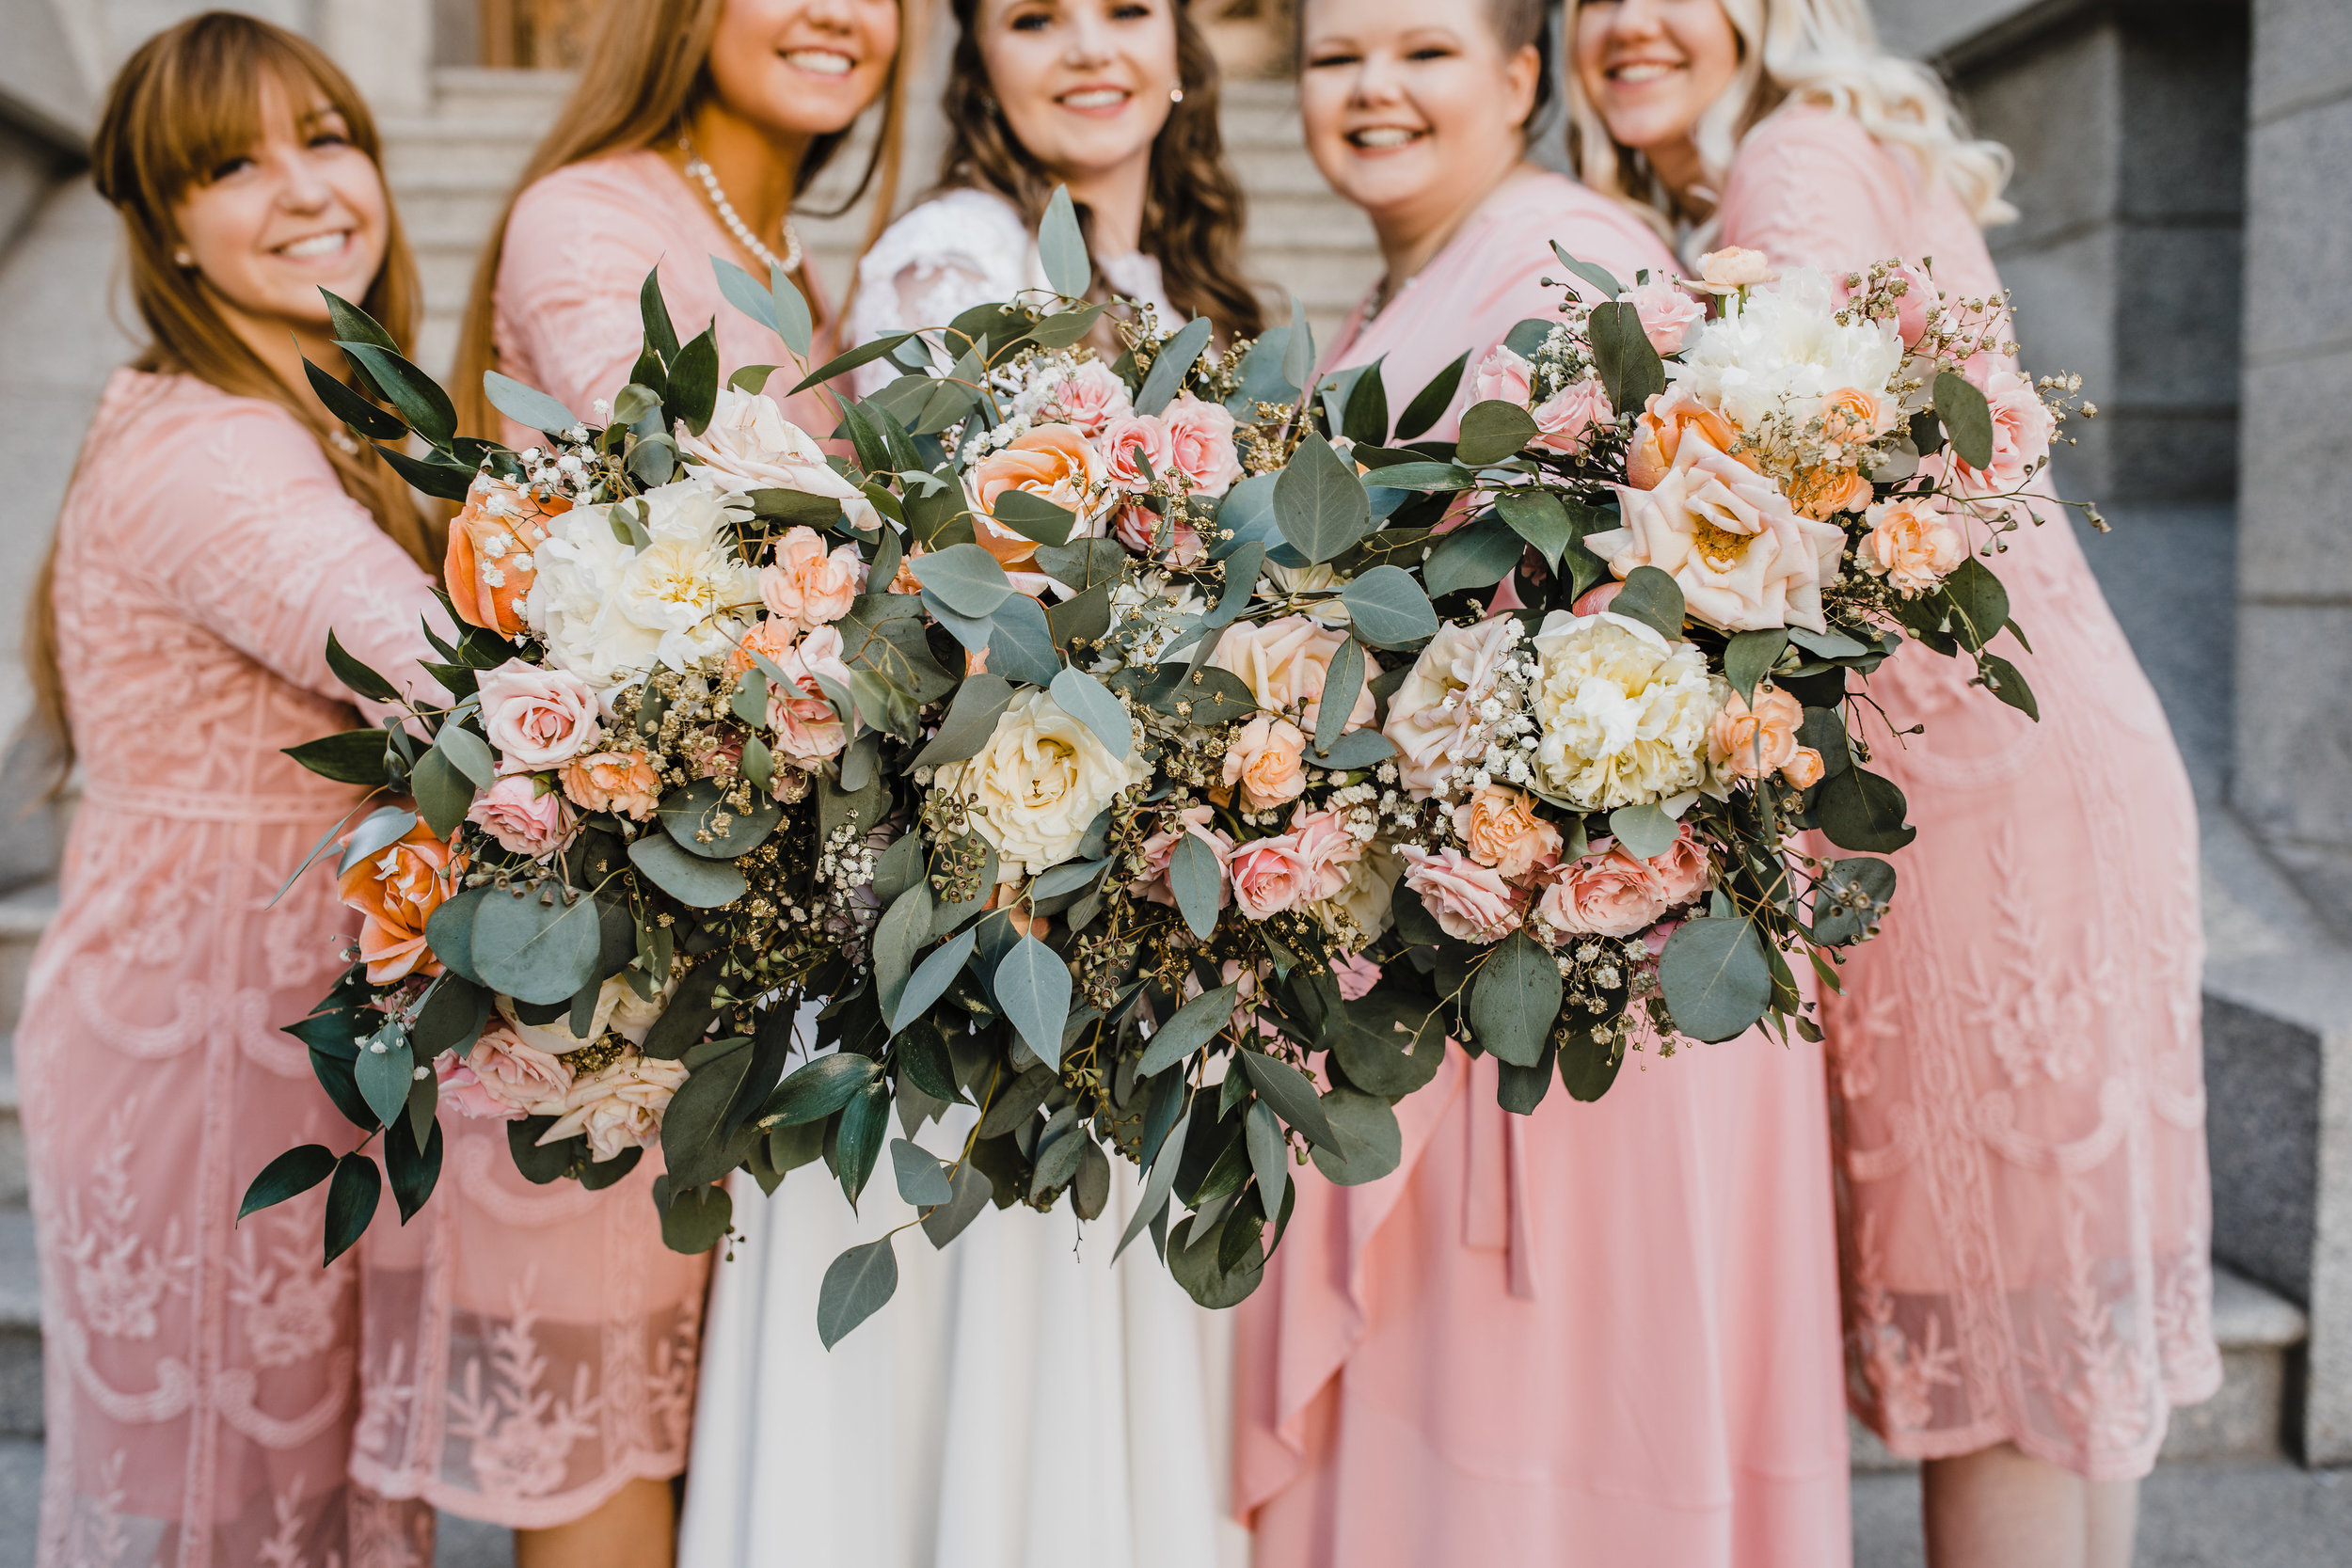 professional wedding photographer salt lake city utah bouquets pink blush